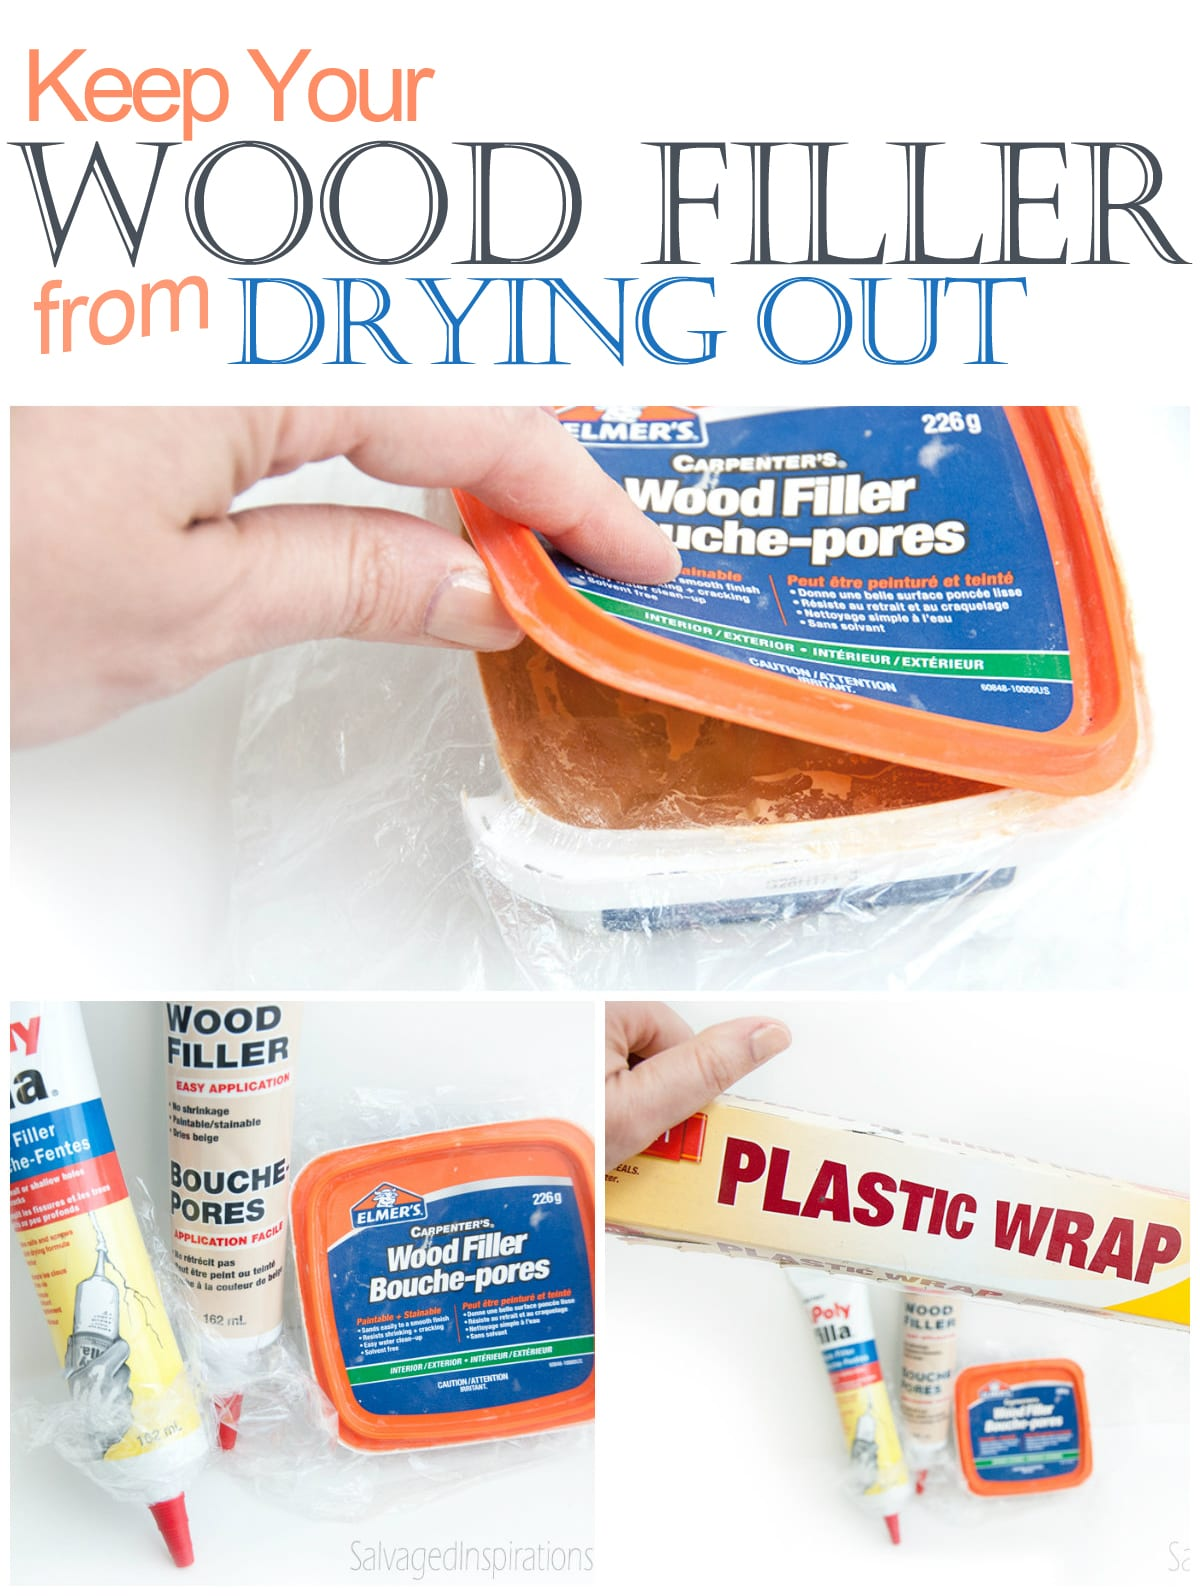 Q-T-T-Keep-Wood-Filler-From-Drying-Out